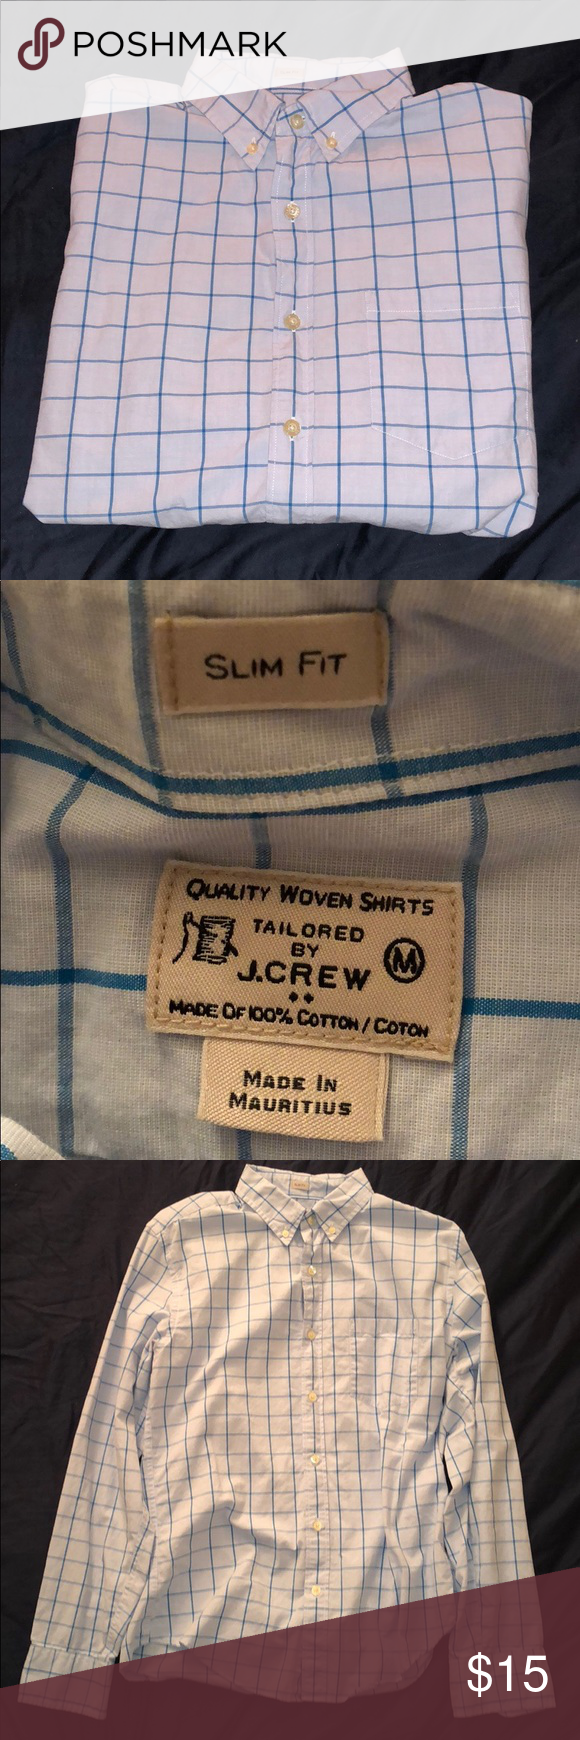 Men's Blue Checkered J. Crew Button Up In perfect condition, two different color blues. I will accept offers or try bundling for some really great savings. J. Crew Factory Shirts Casual Button Down Shirts